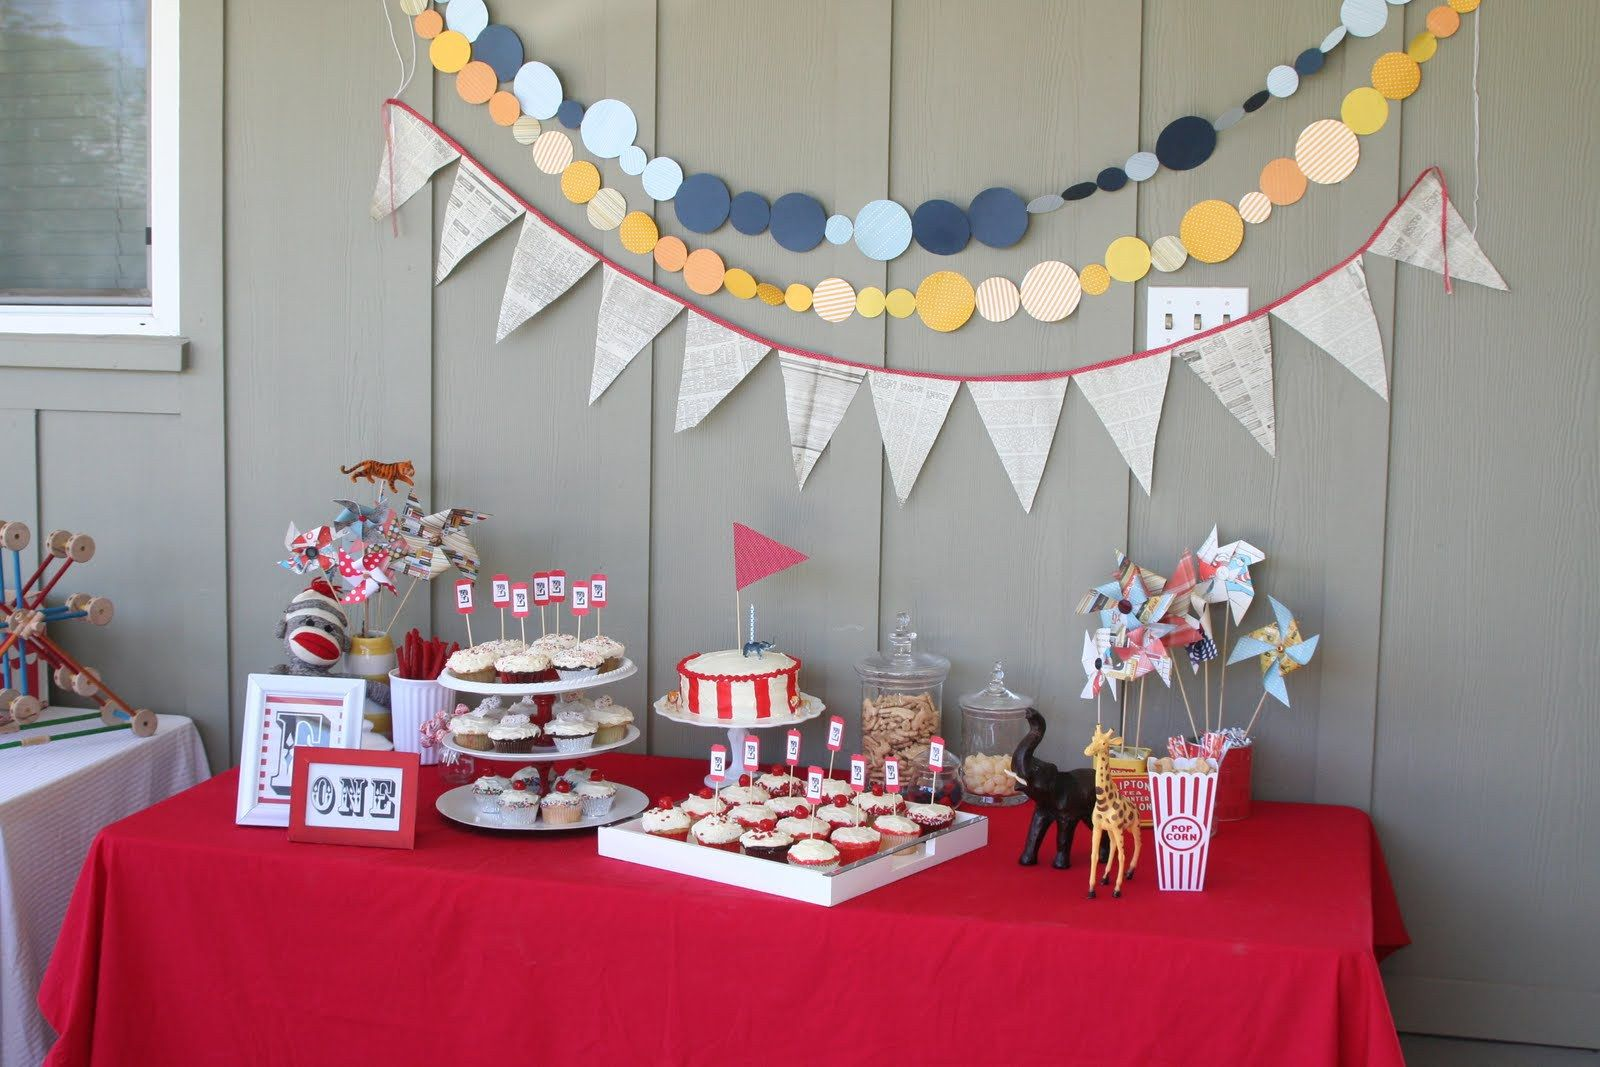 Birthday table decorations at home - Decorations Marvelous Birthday Party Decoration Ideas Outdoor With Simple Party Decoration Balloons That Also Decorated Flowers On The Table From 20